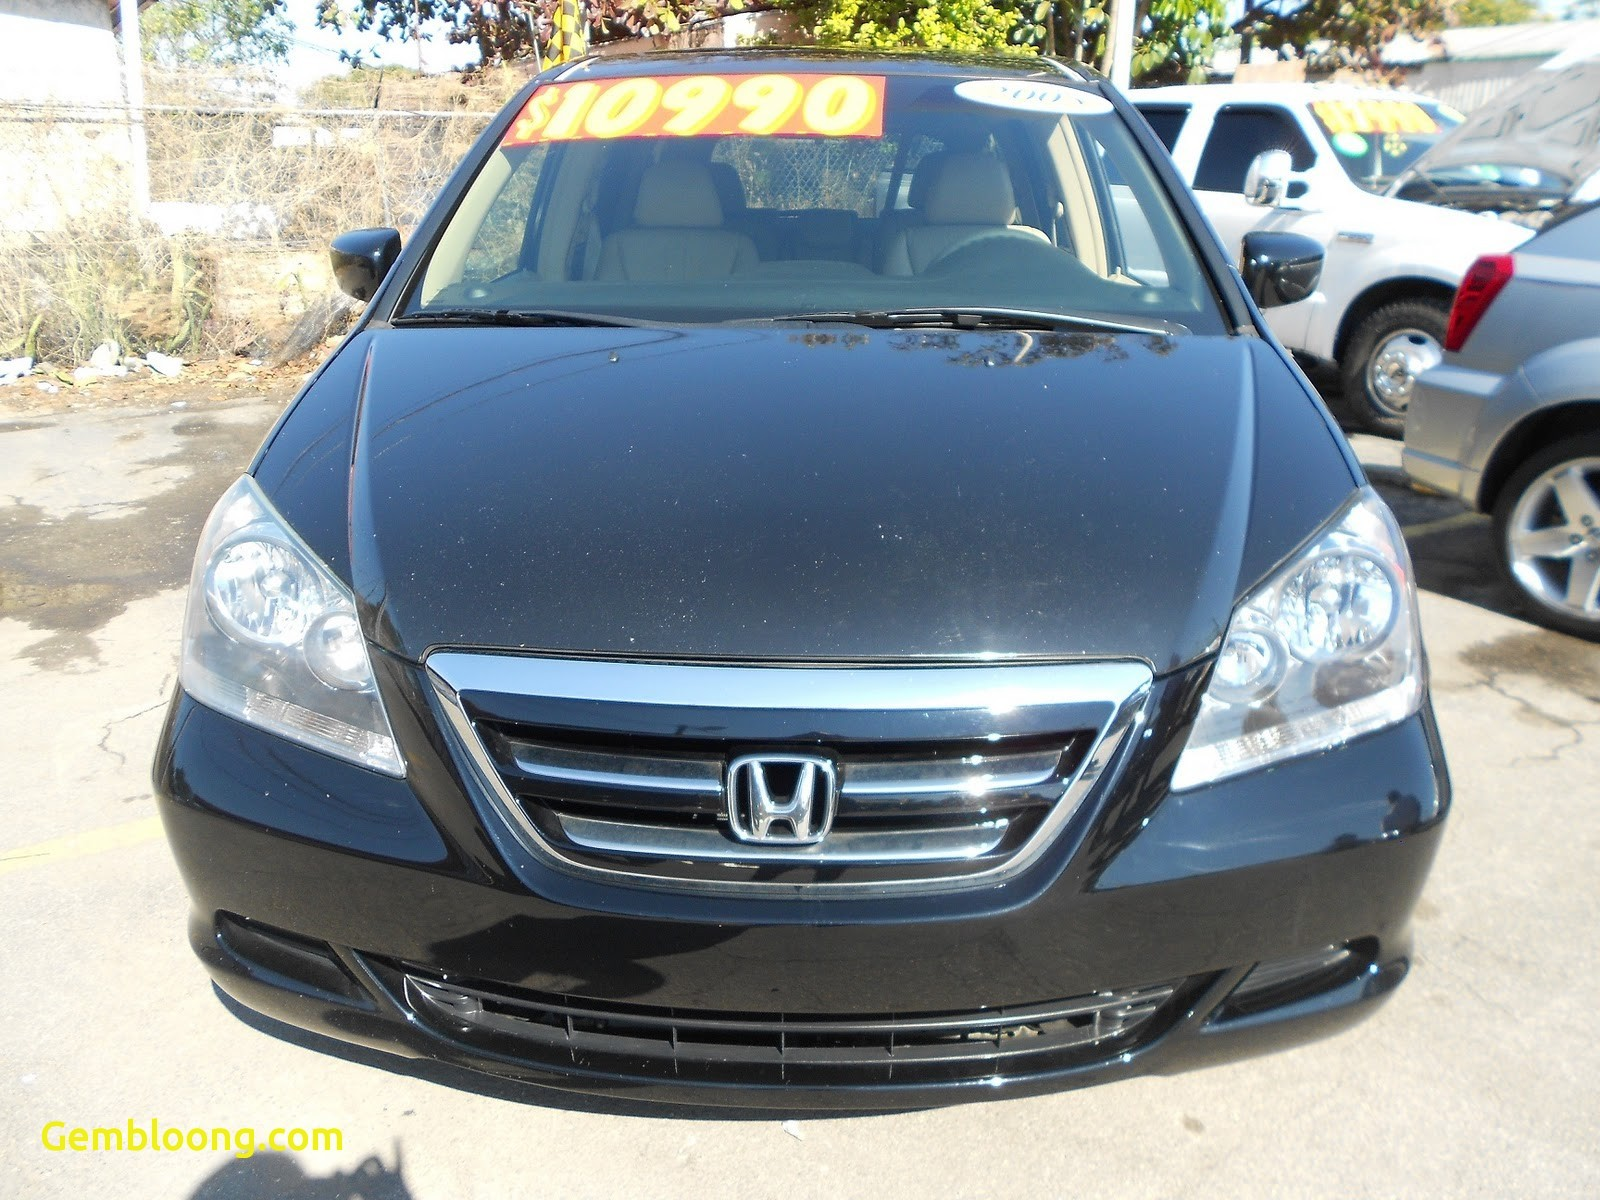 Fresh Used Cars for Sale Around Me